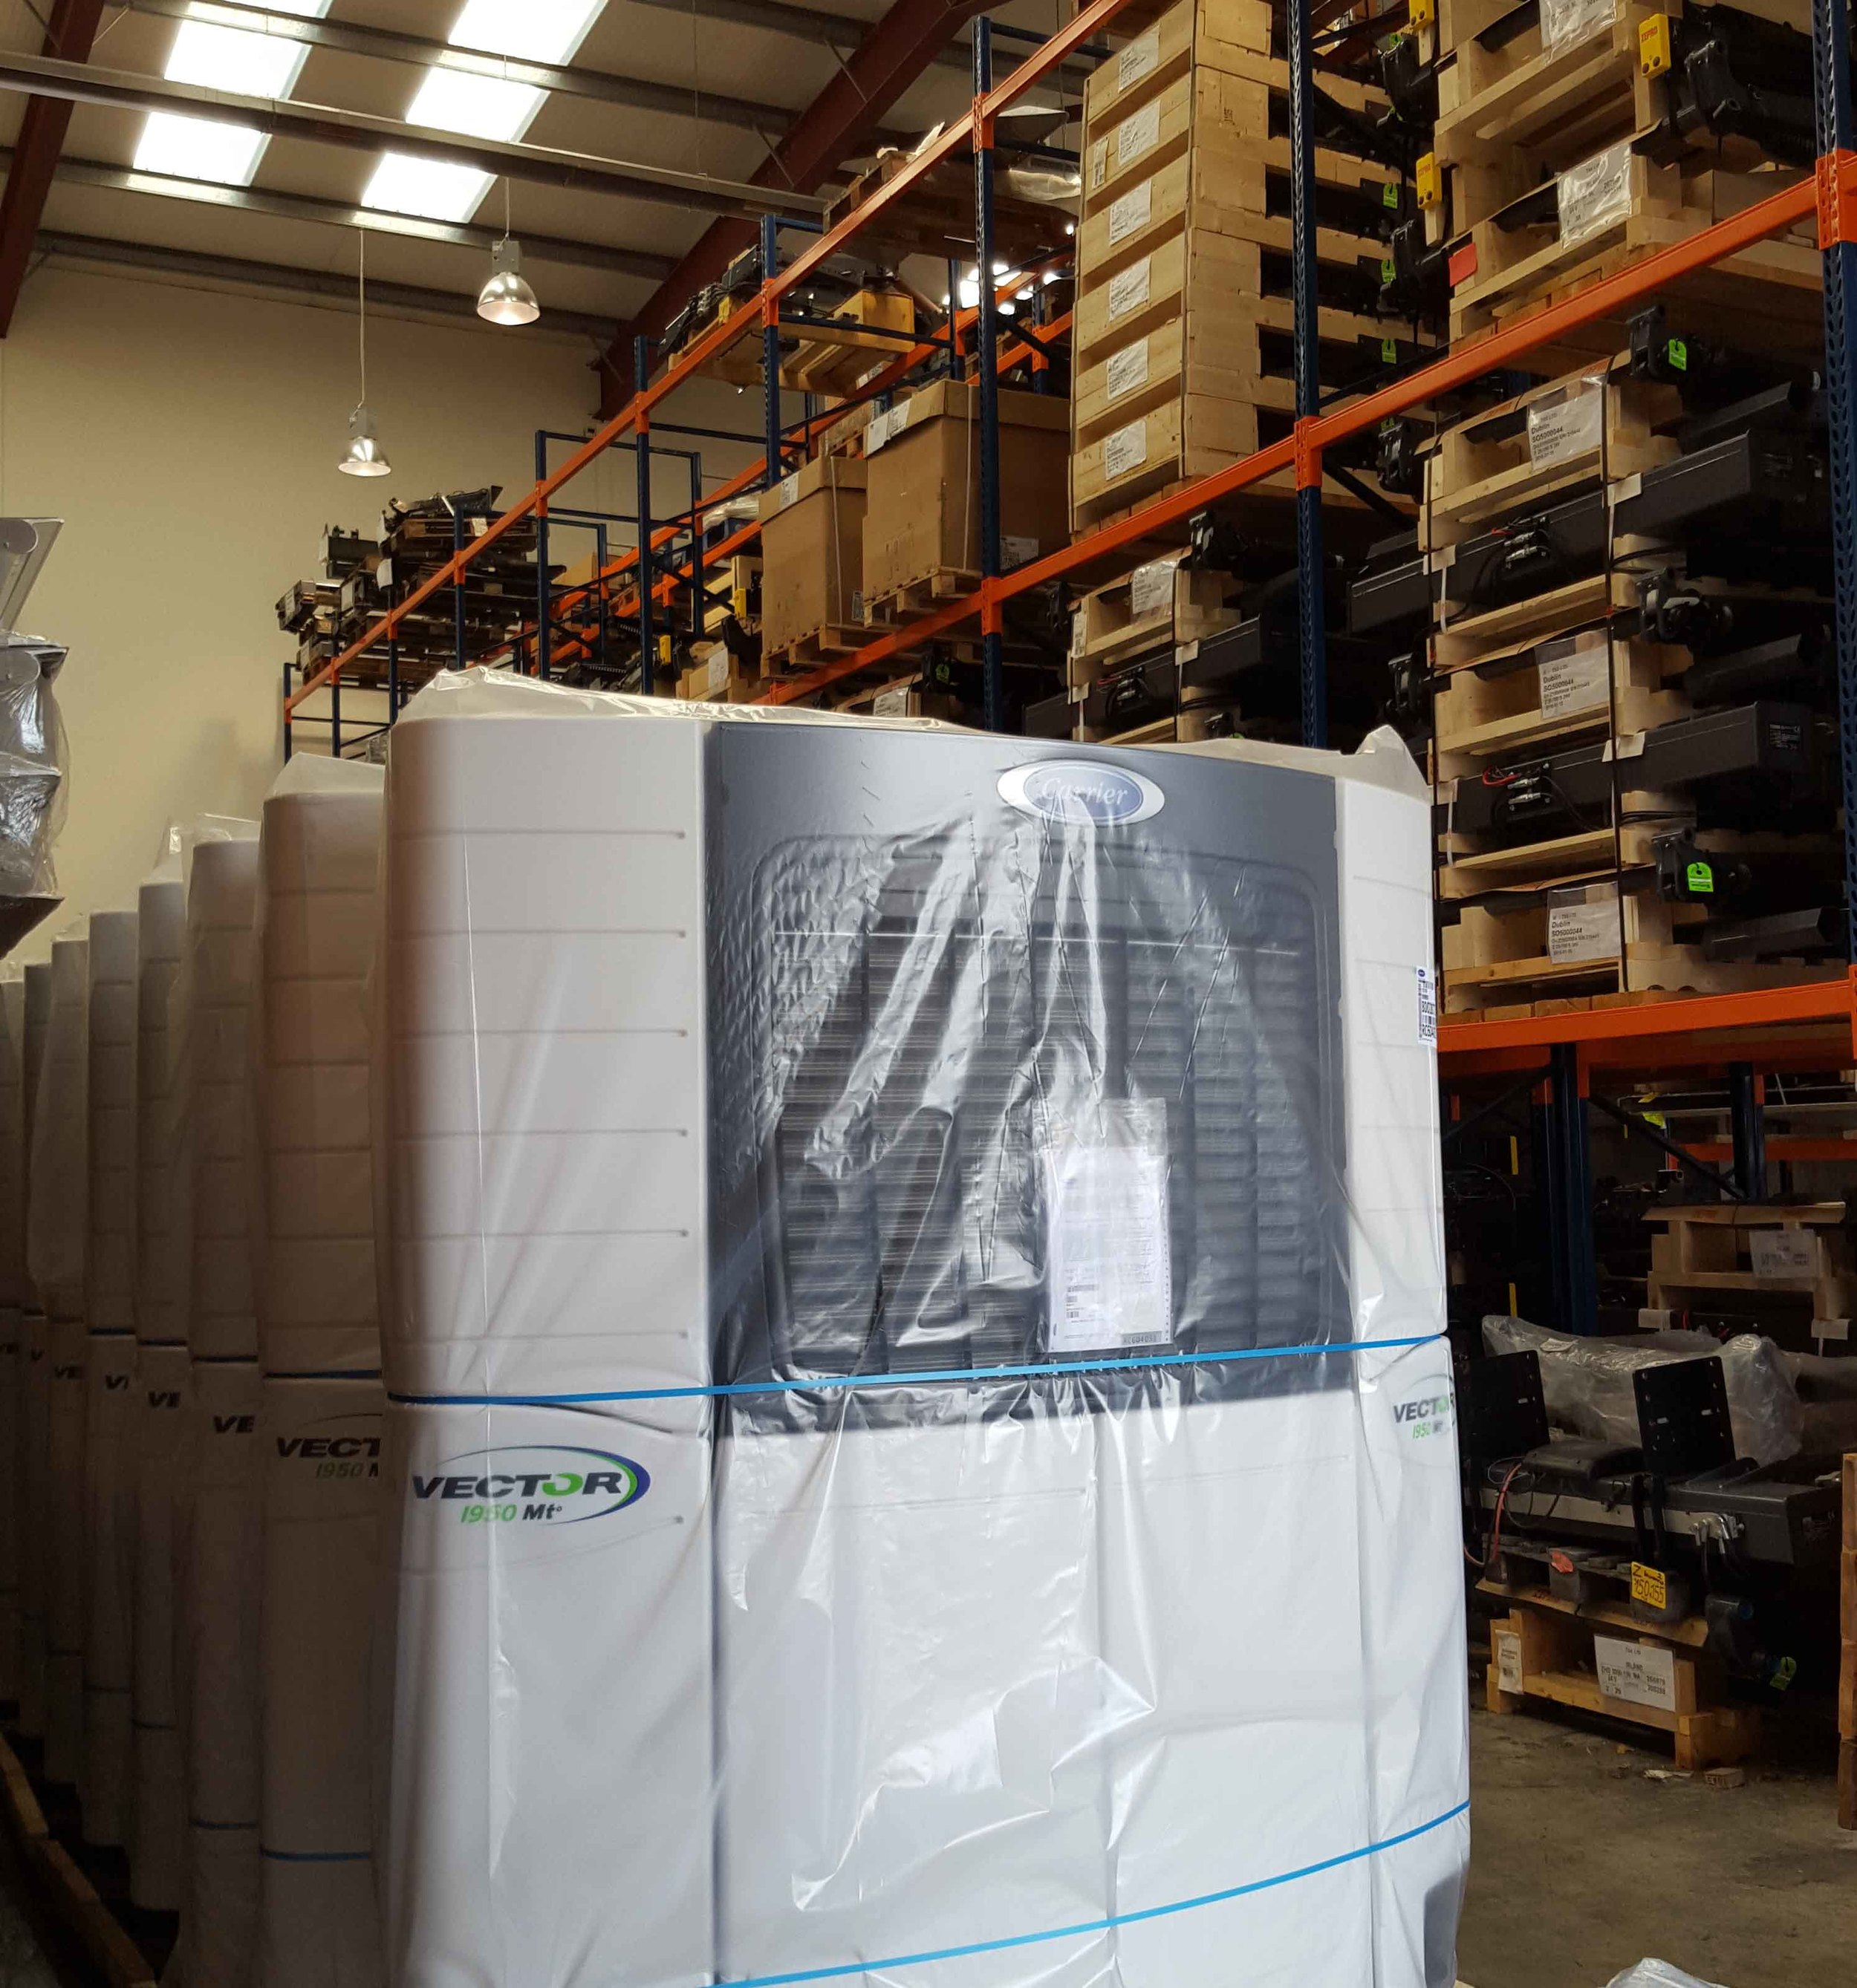 tss-ltd-spare-parts-for-zepro-and-del-tail-lifts-carrier-refrigeration-and-moffett-forklifts